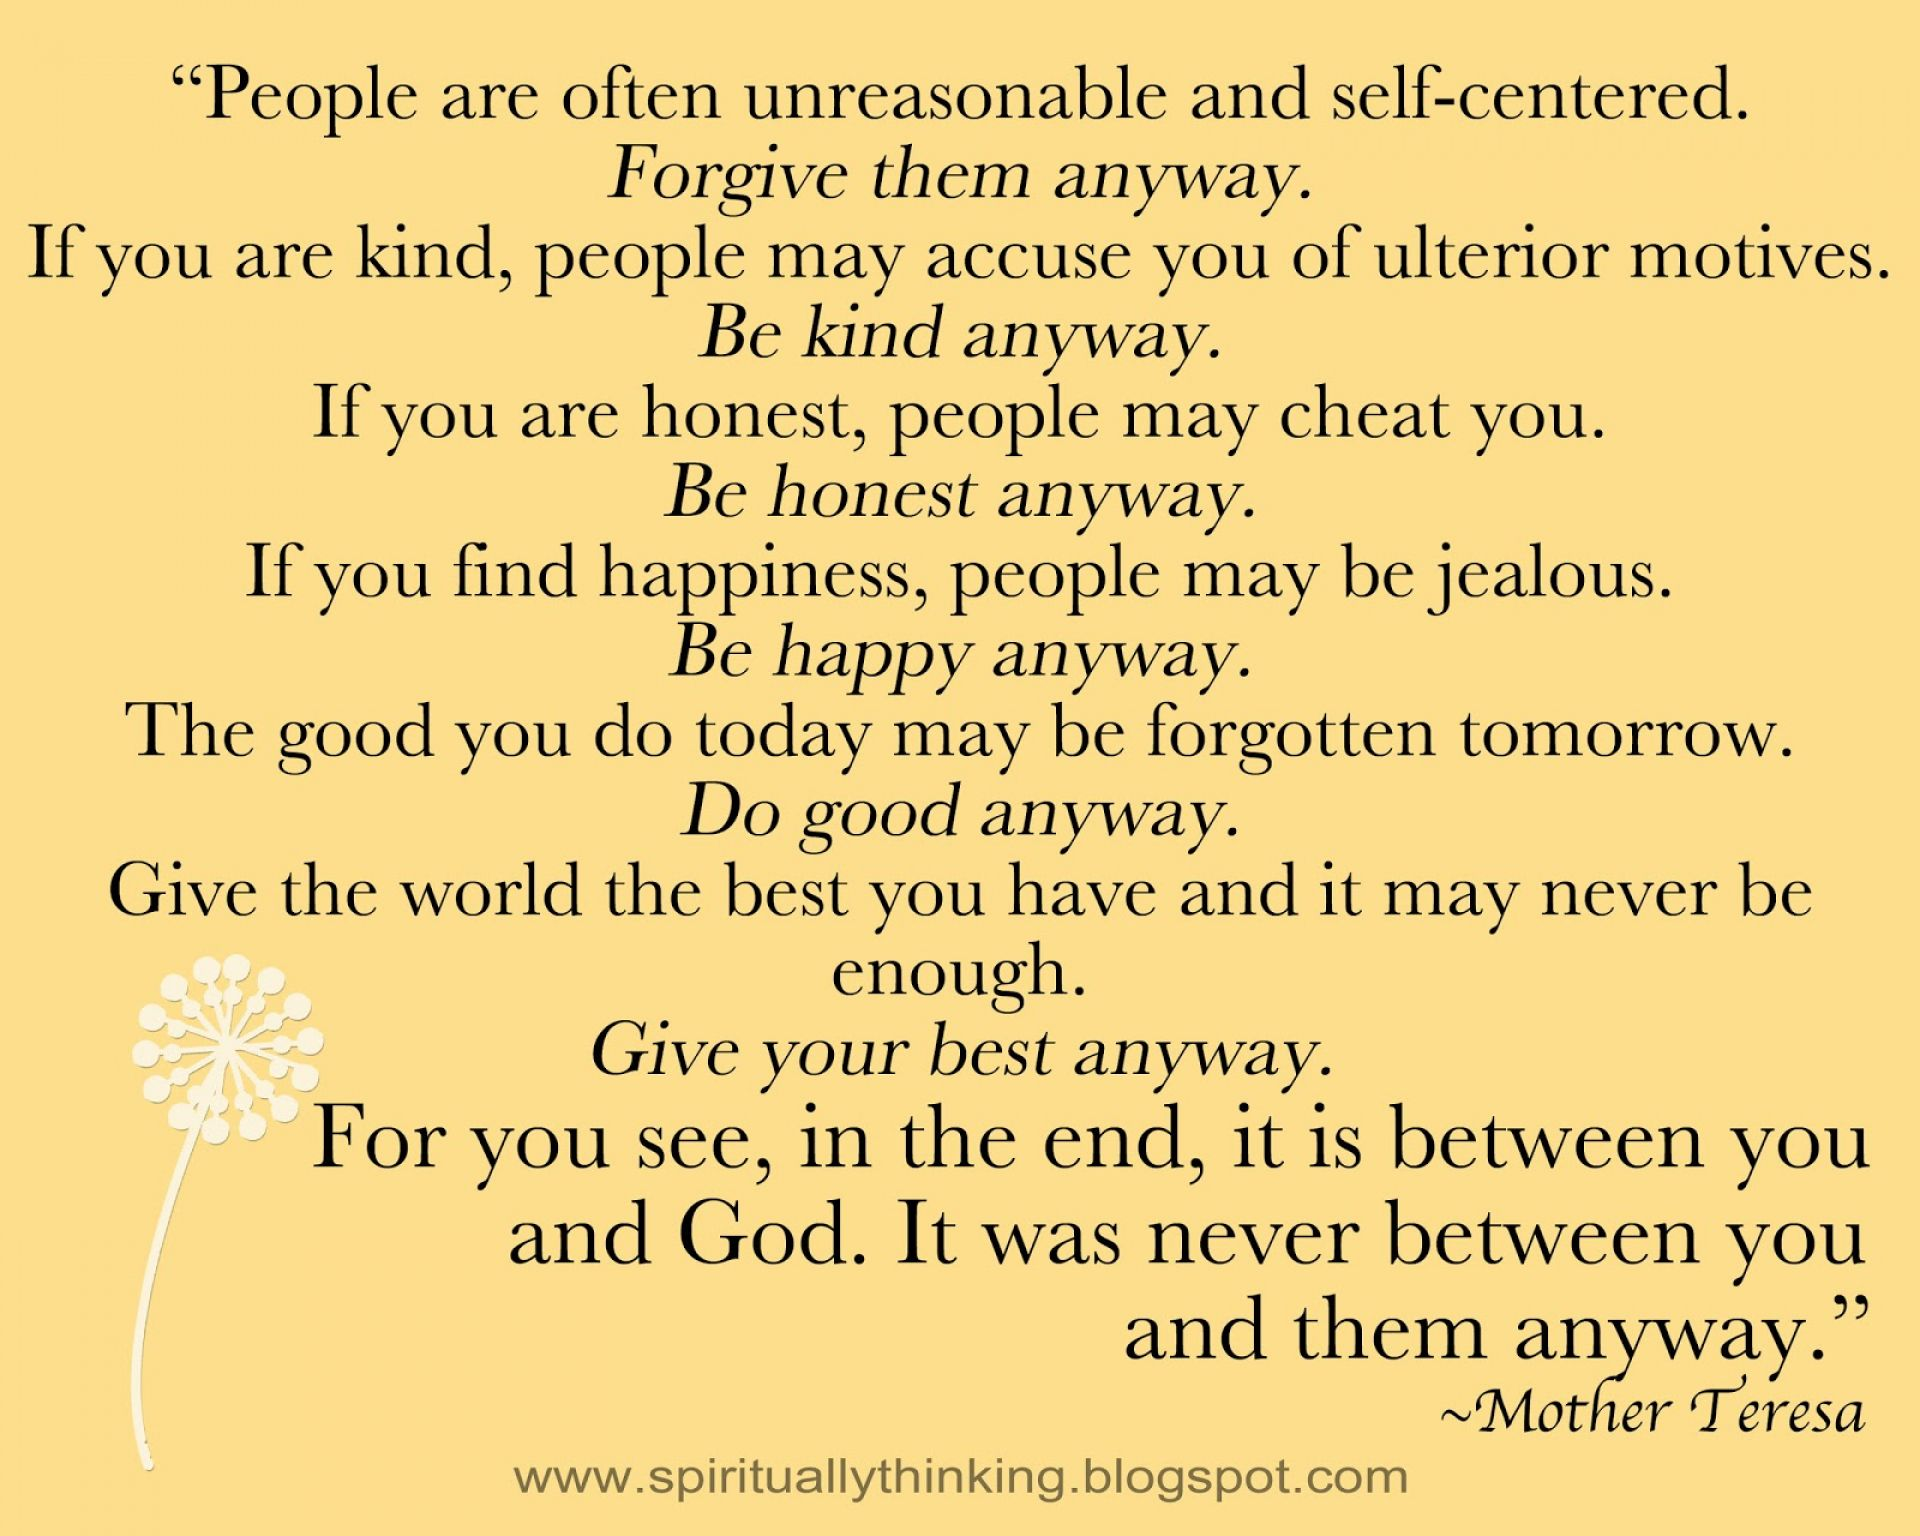 Mother Teresa Quotes Love Them Anyway Image Result For Mother Teresa Quotes Love Them Anyway  Sayings